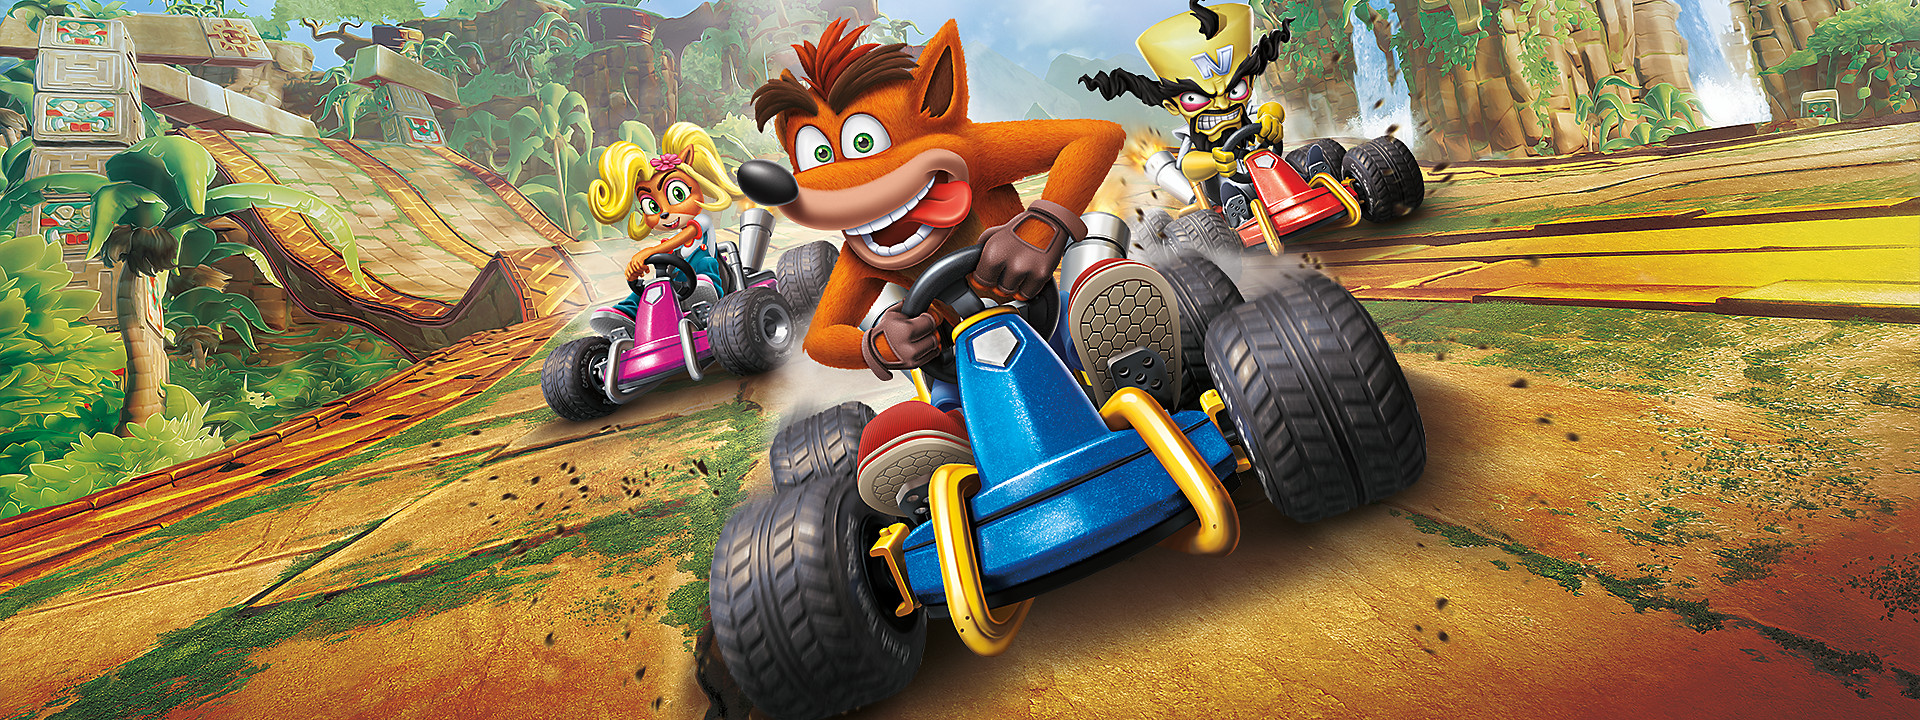 Estandarte del juego Crash Team Racing Nitro-Fueled